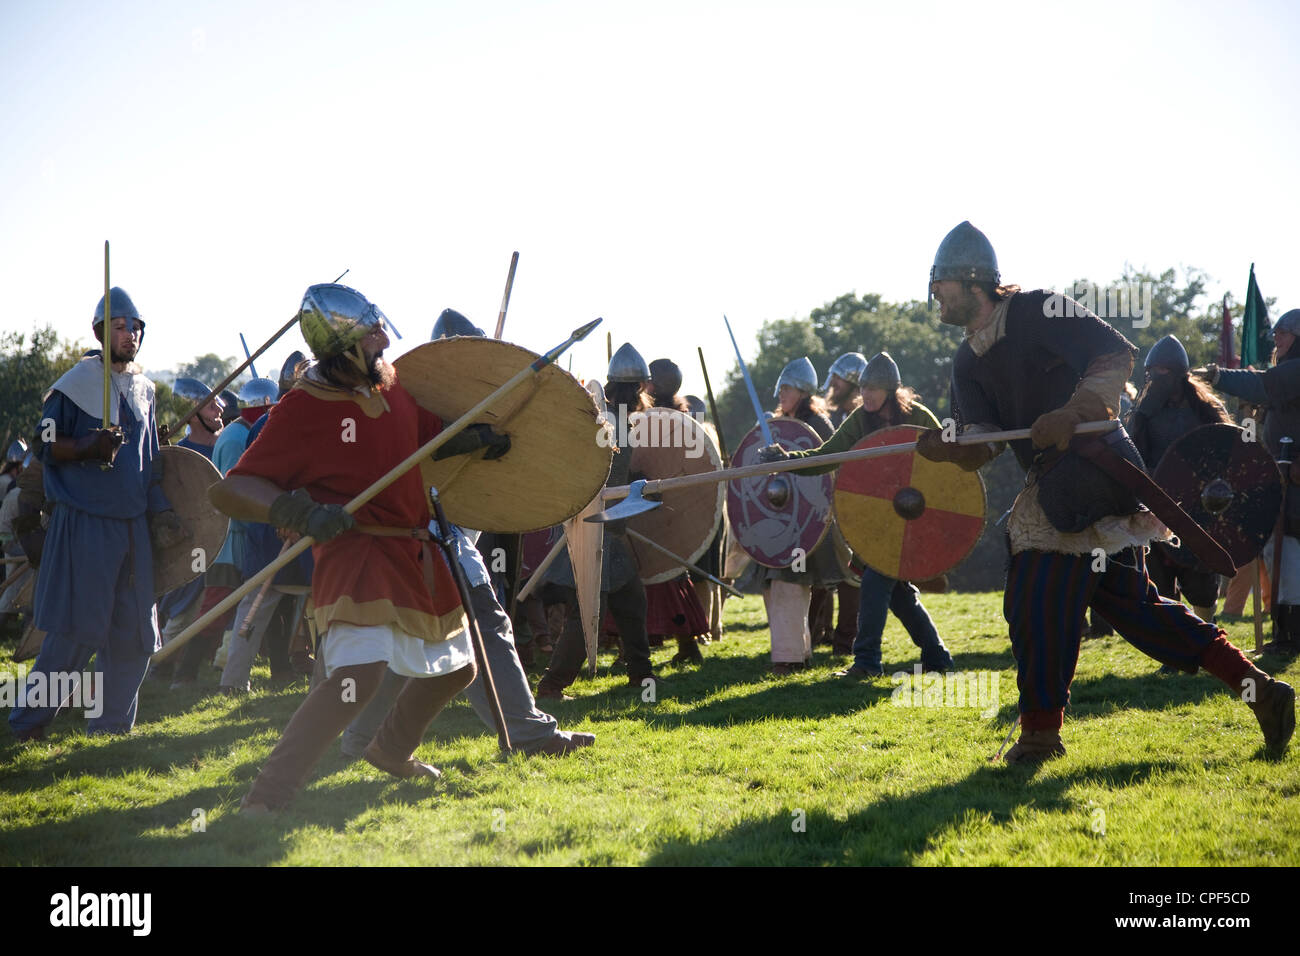 Reenactment of 1066 Battle of Hastings. East Sussex. England. - Stock Image